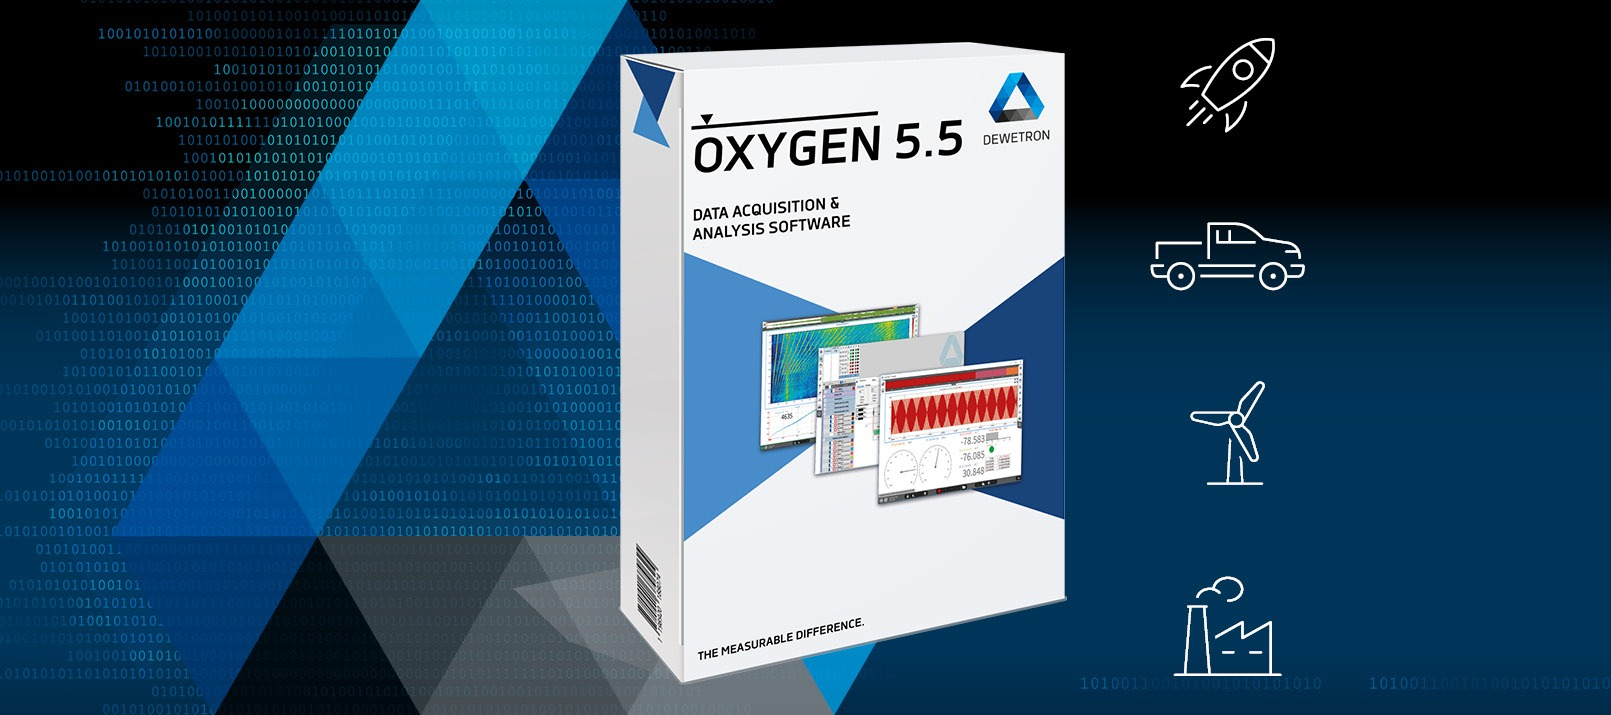 OXYGEN 5.5 - the banner for the new software update